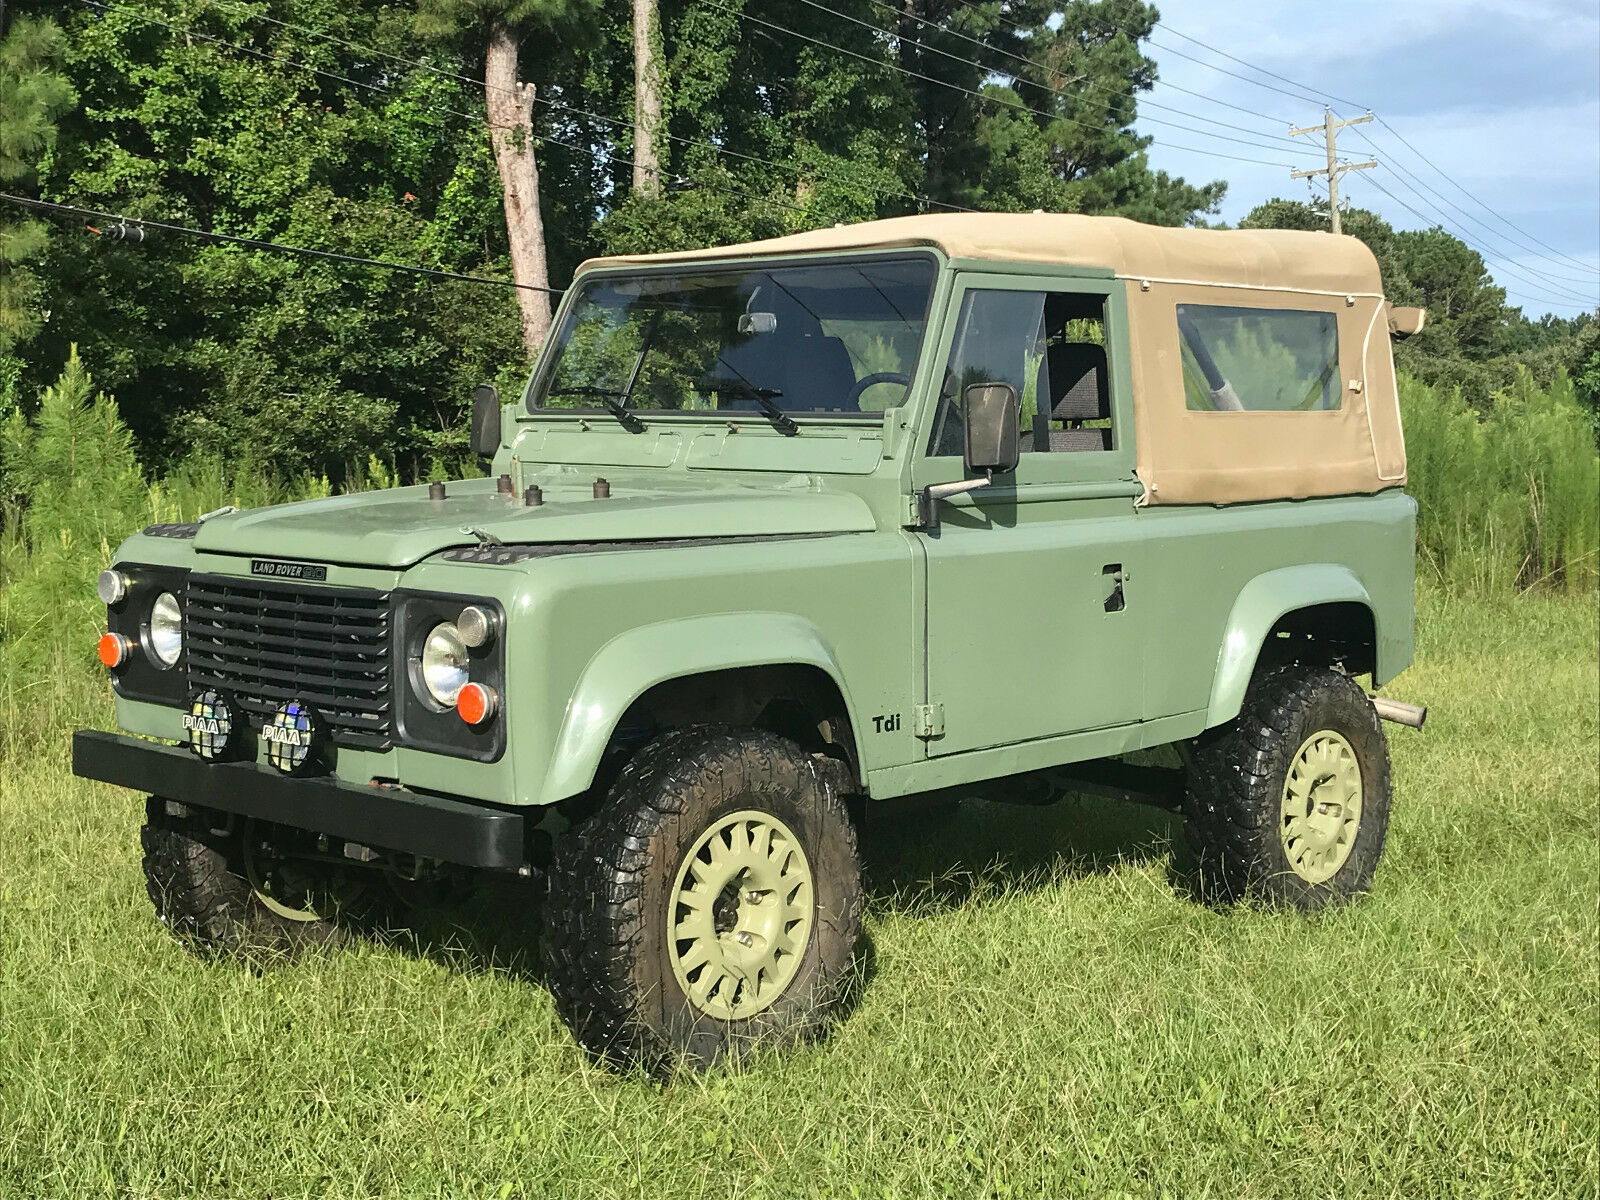 1986 Land Rover Defender  LHD defender 90 soft top, 200tdi diesel, Very clean truck, in heritage colors